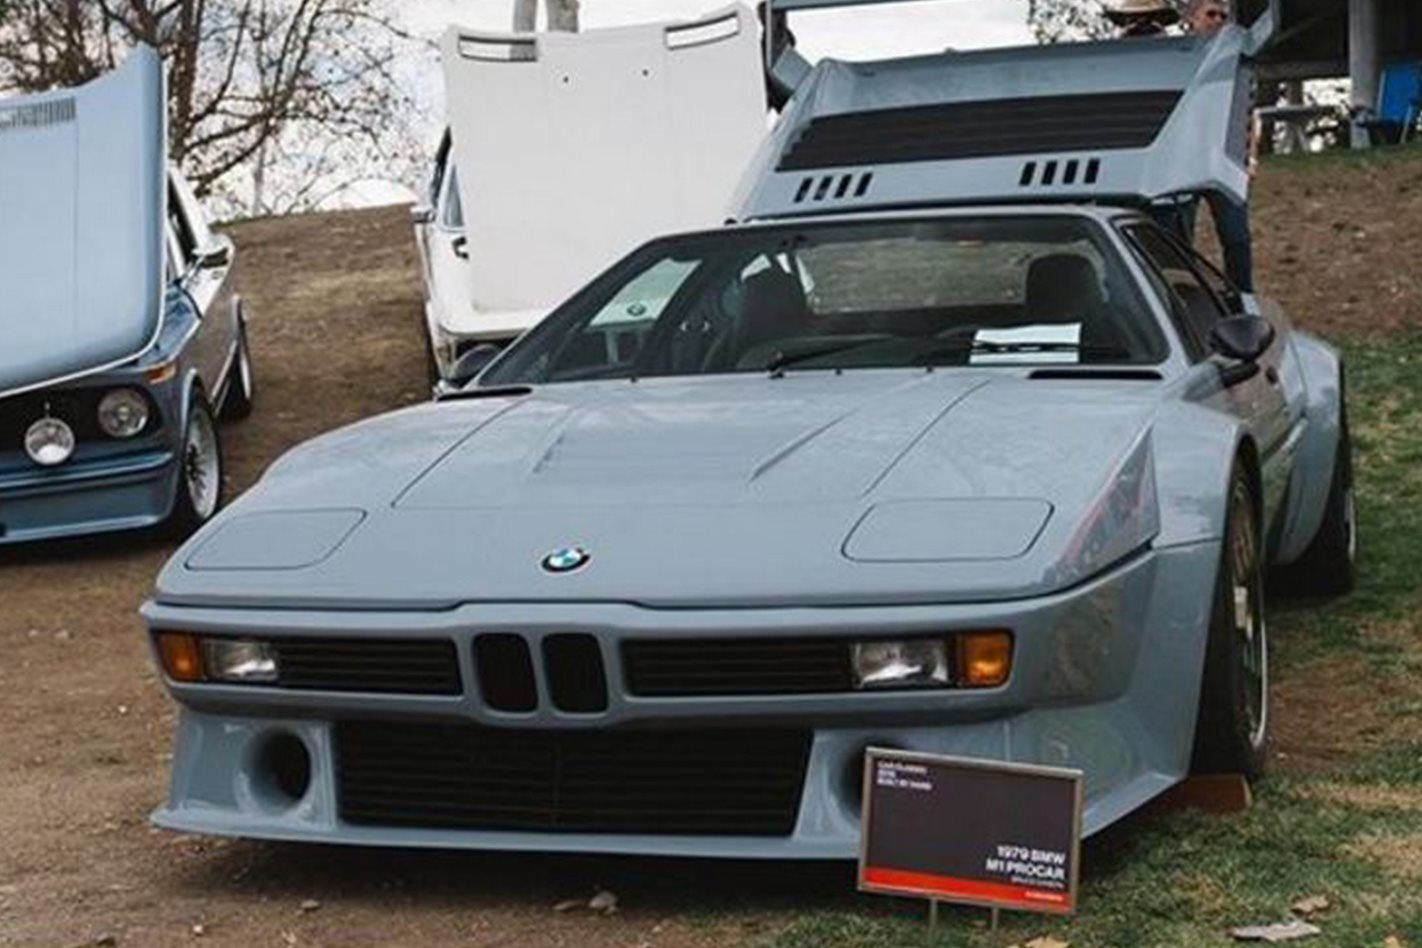 One-off road-legal 1979 BMW M1 Procar